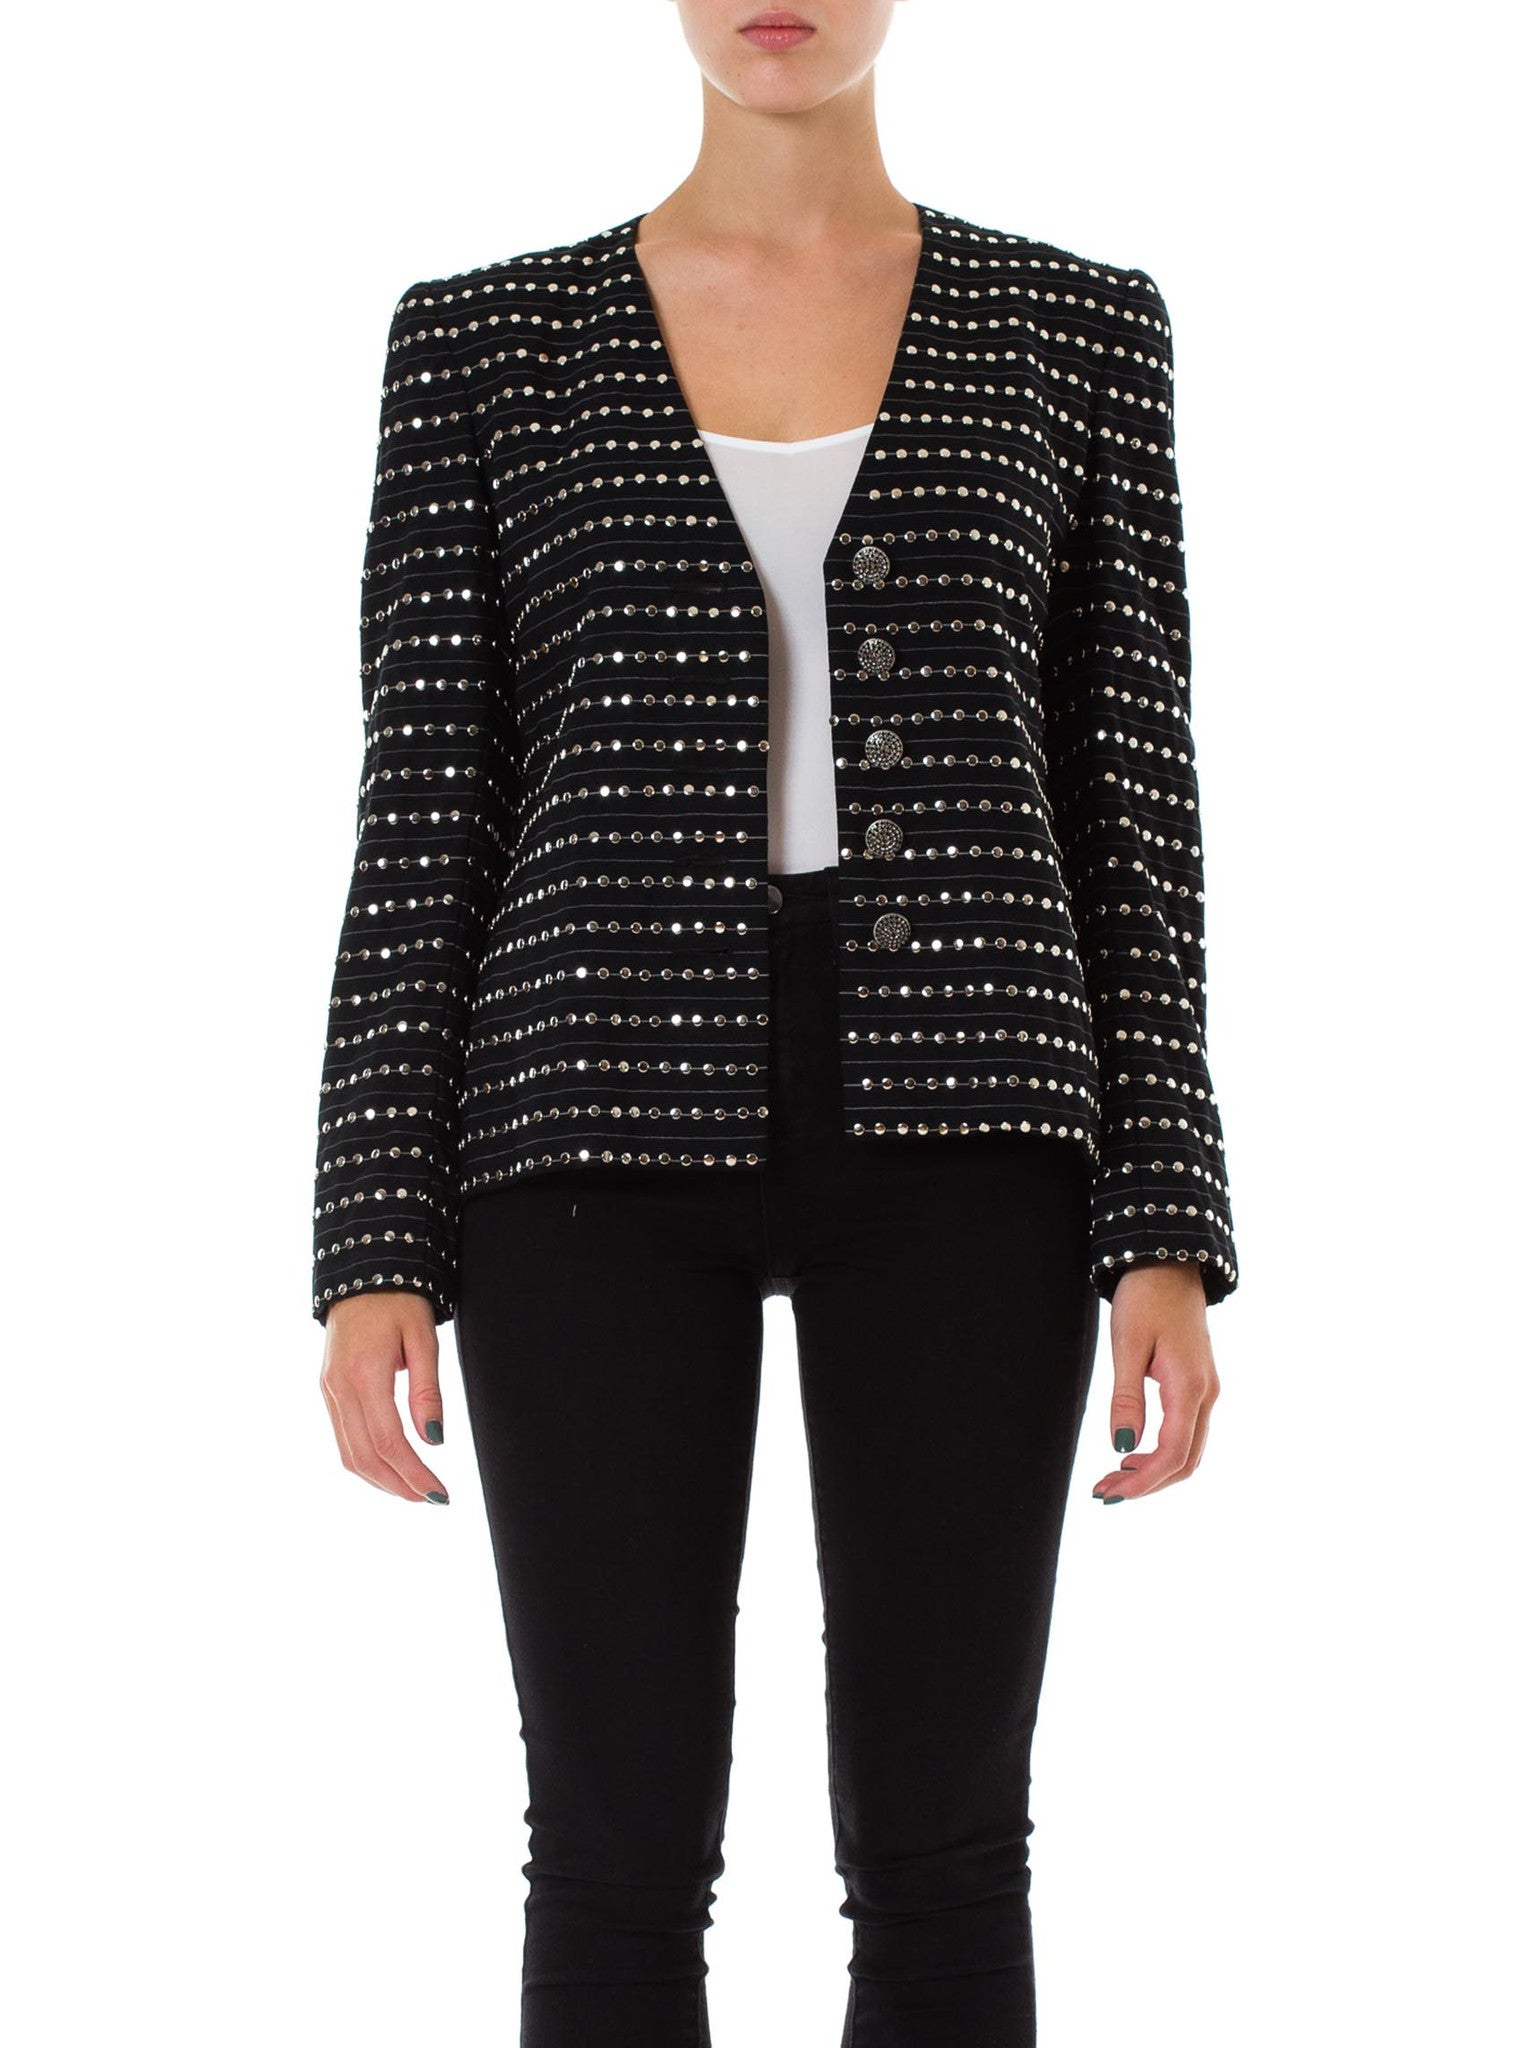 1980s Galanos Metal Studded Jacket